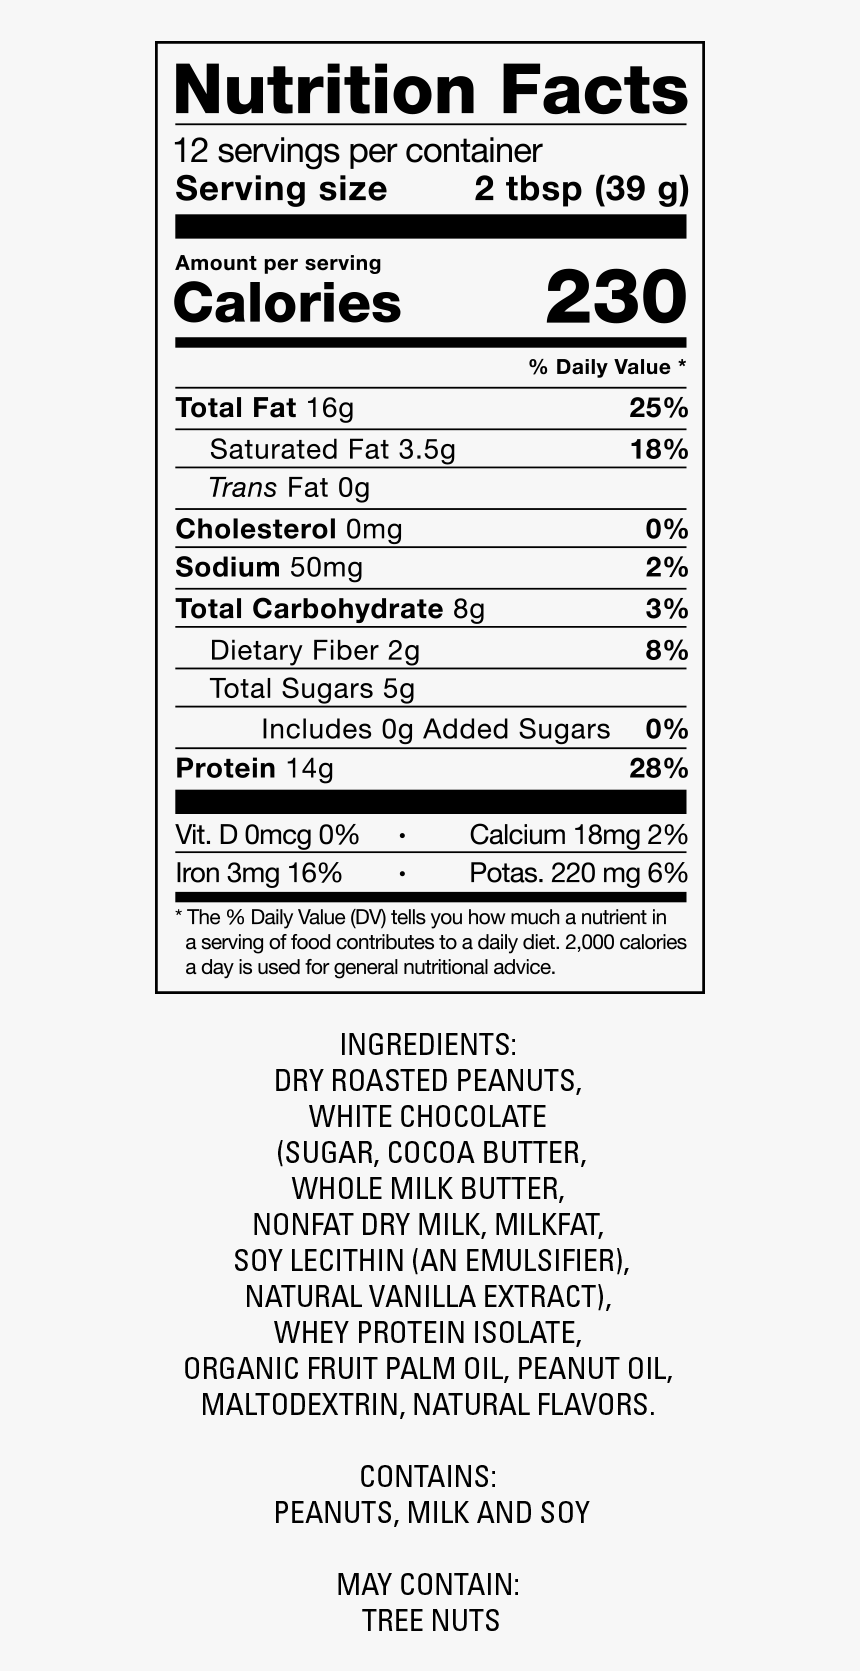 Cream Nutrition Facts, HD Png Download